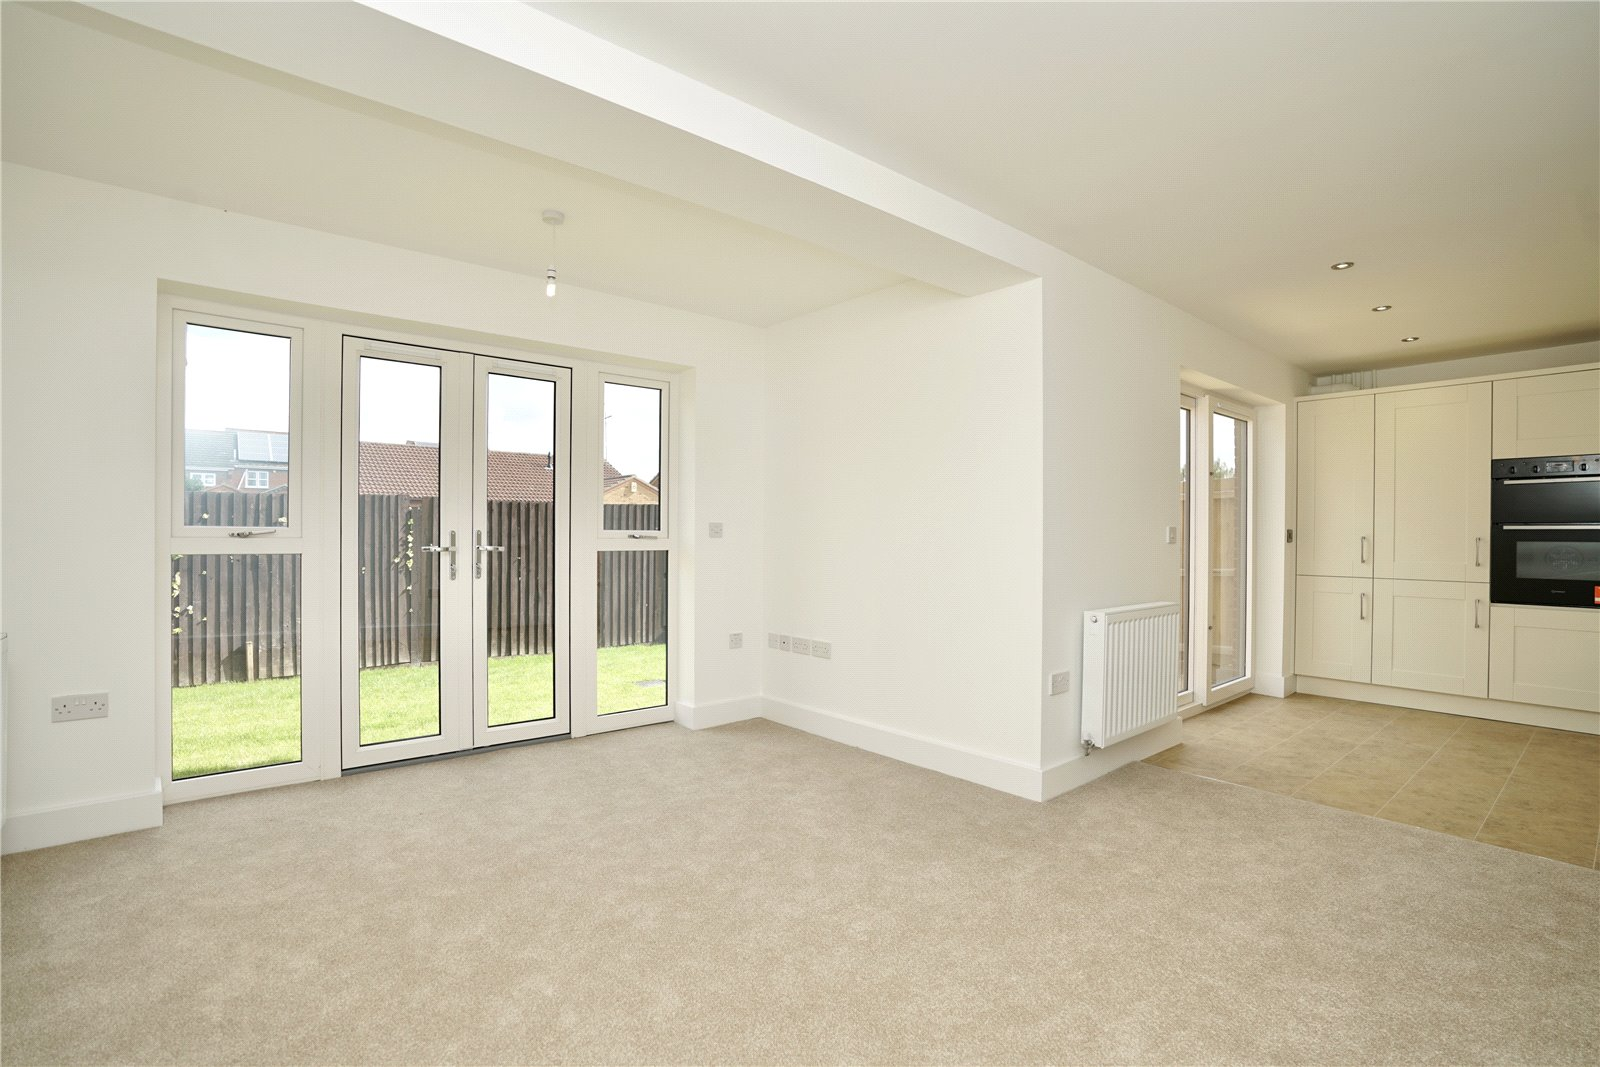 3 bed bungalow for sale in Whittlesey, PE7 1RU  - Property Image 3